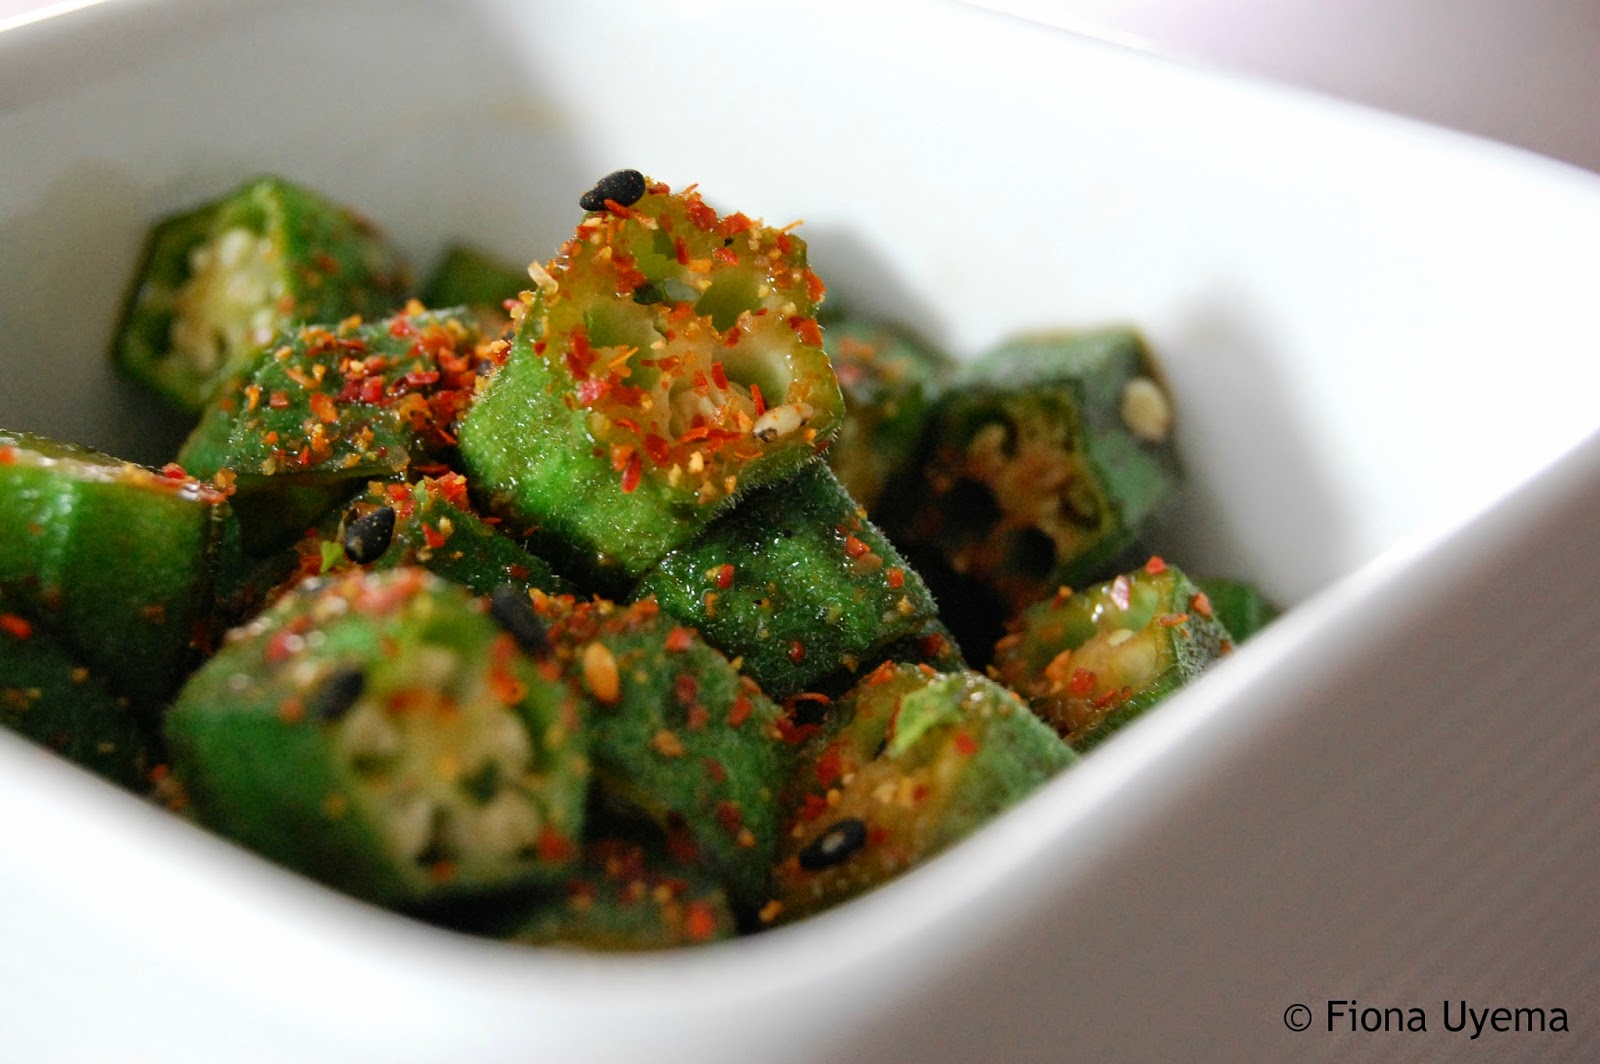 Fiona S Japanese Cooking Japanese Stir Fried Okra Vegetable Recipe